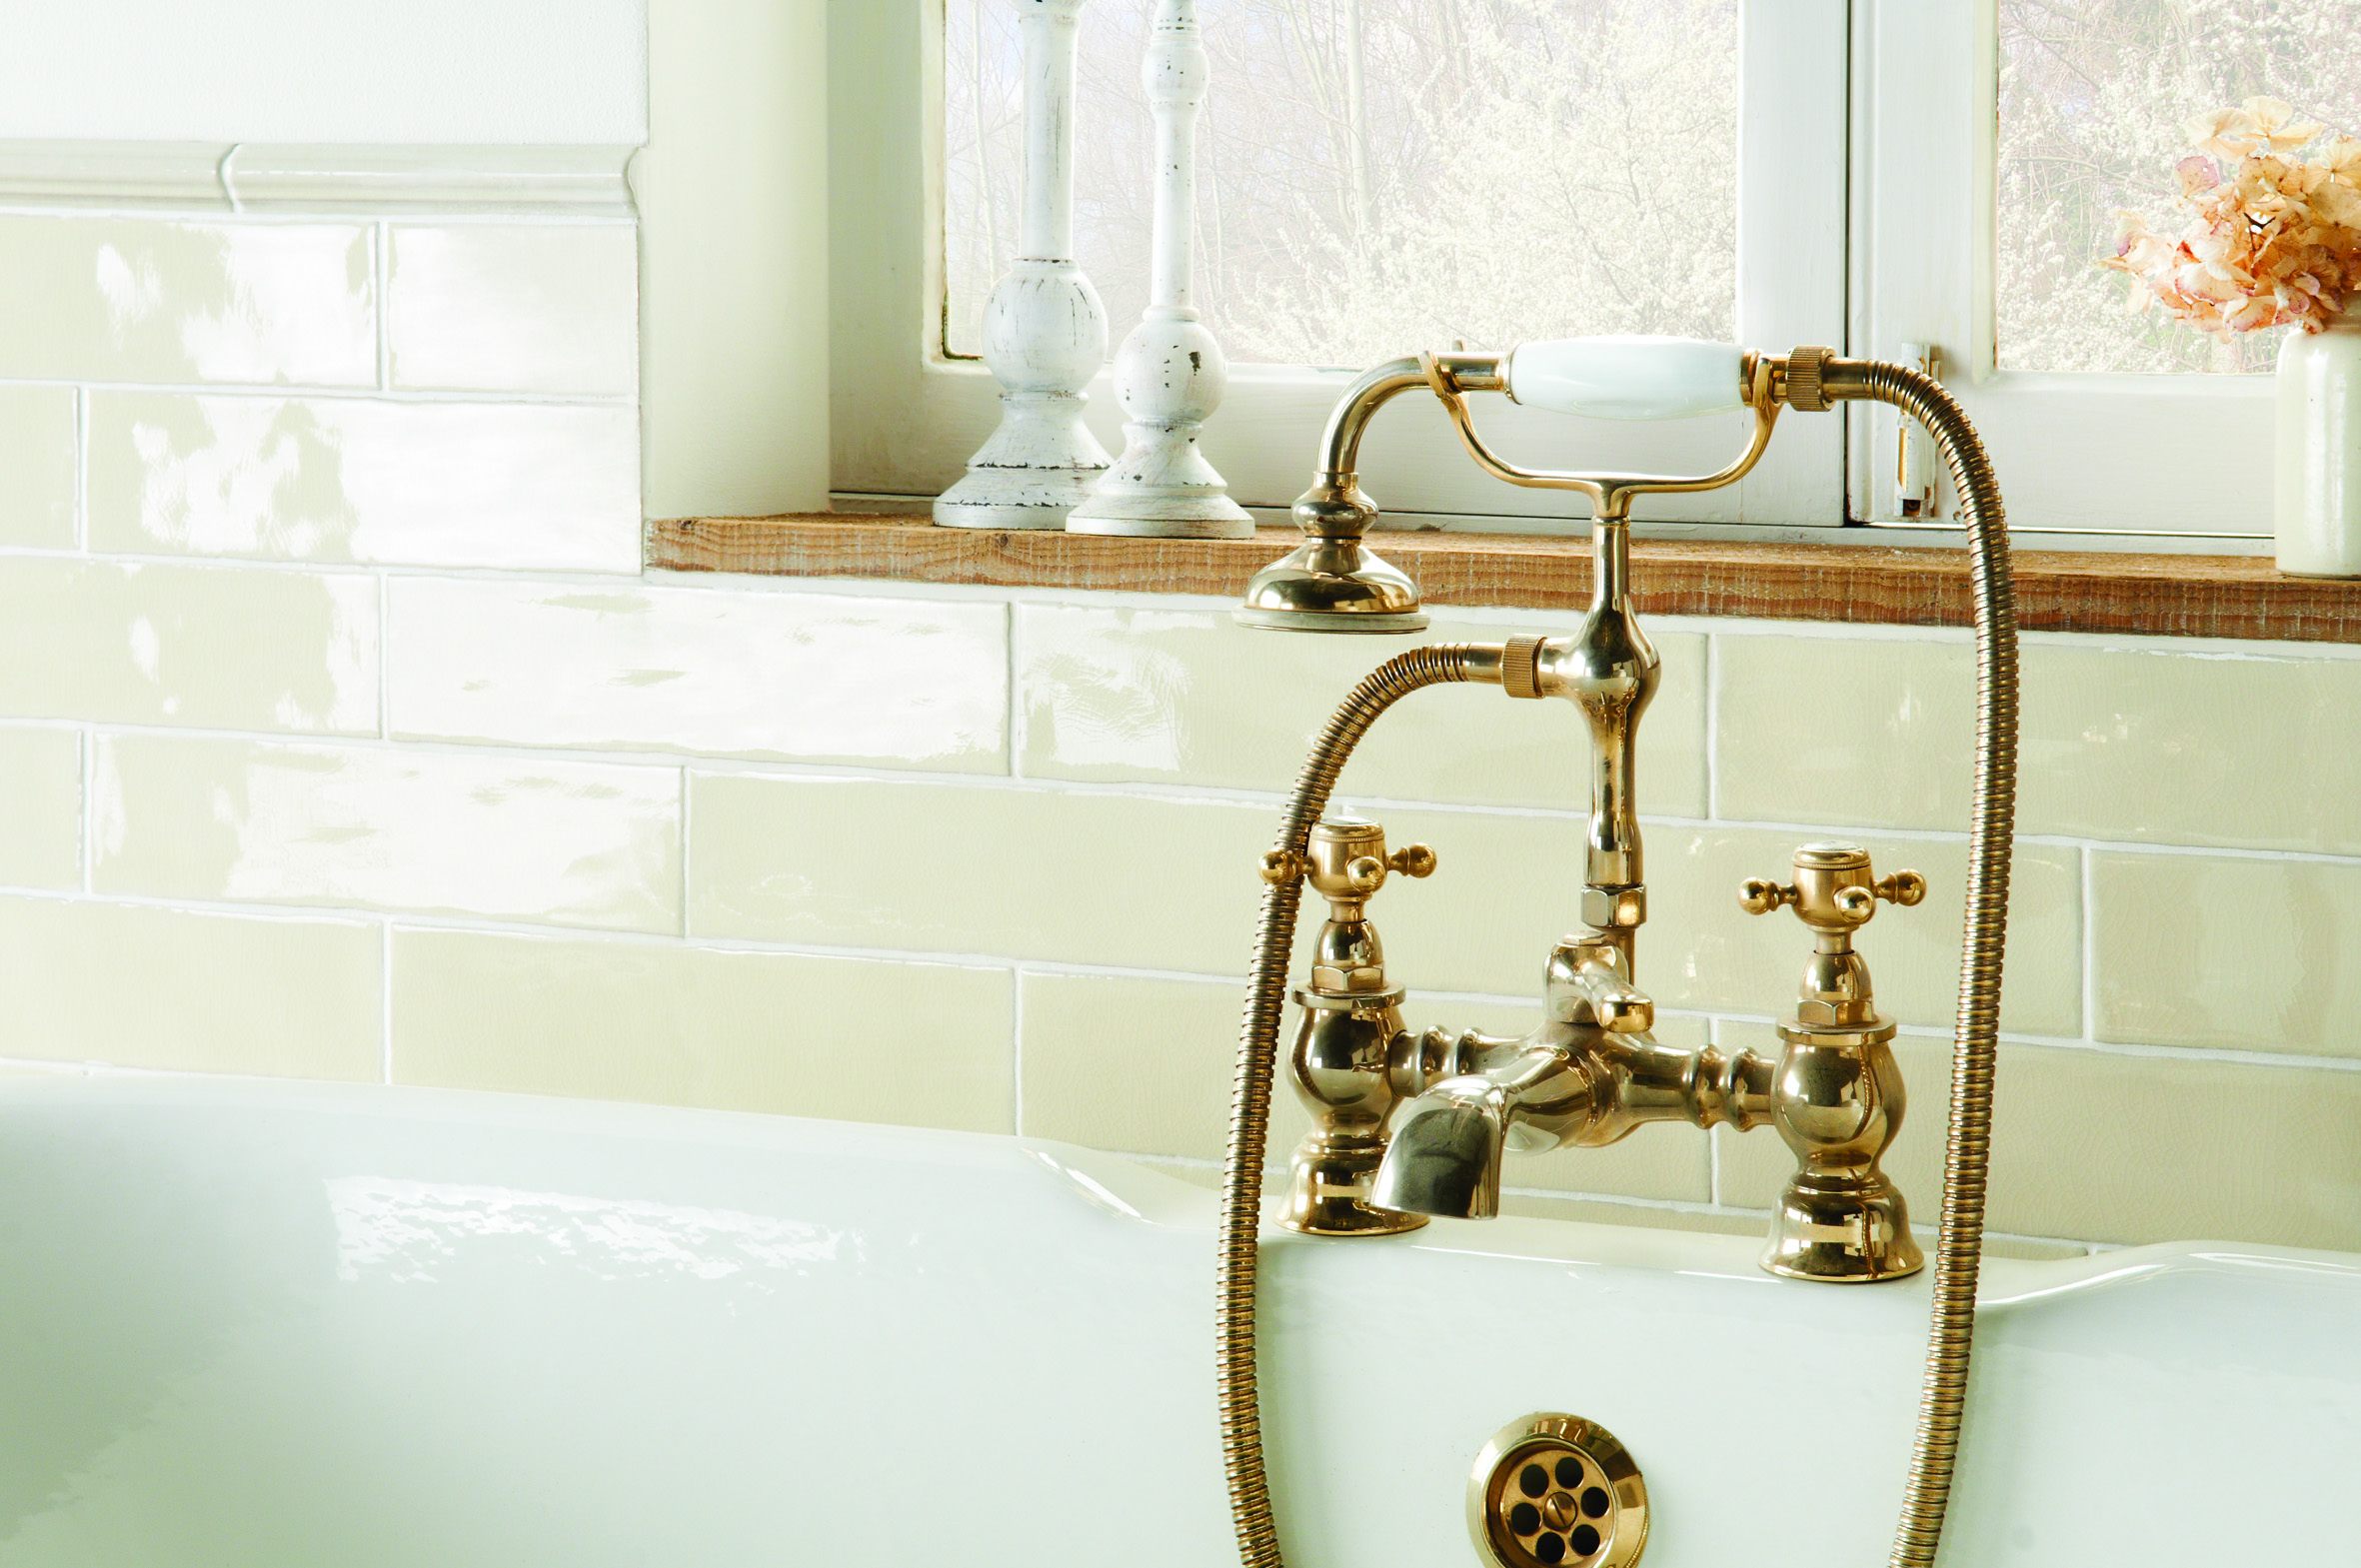 Photo Credit: Original Style - Winchester Tile Co.